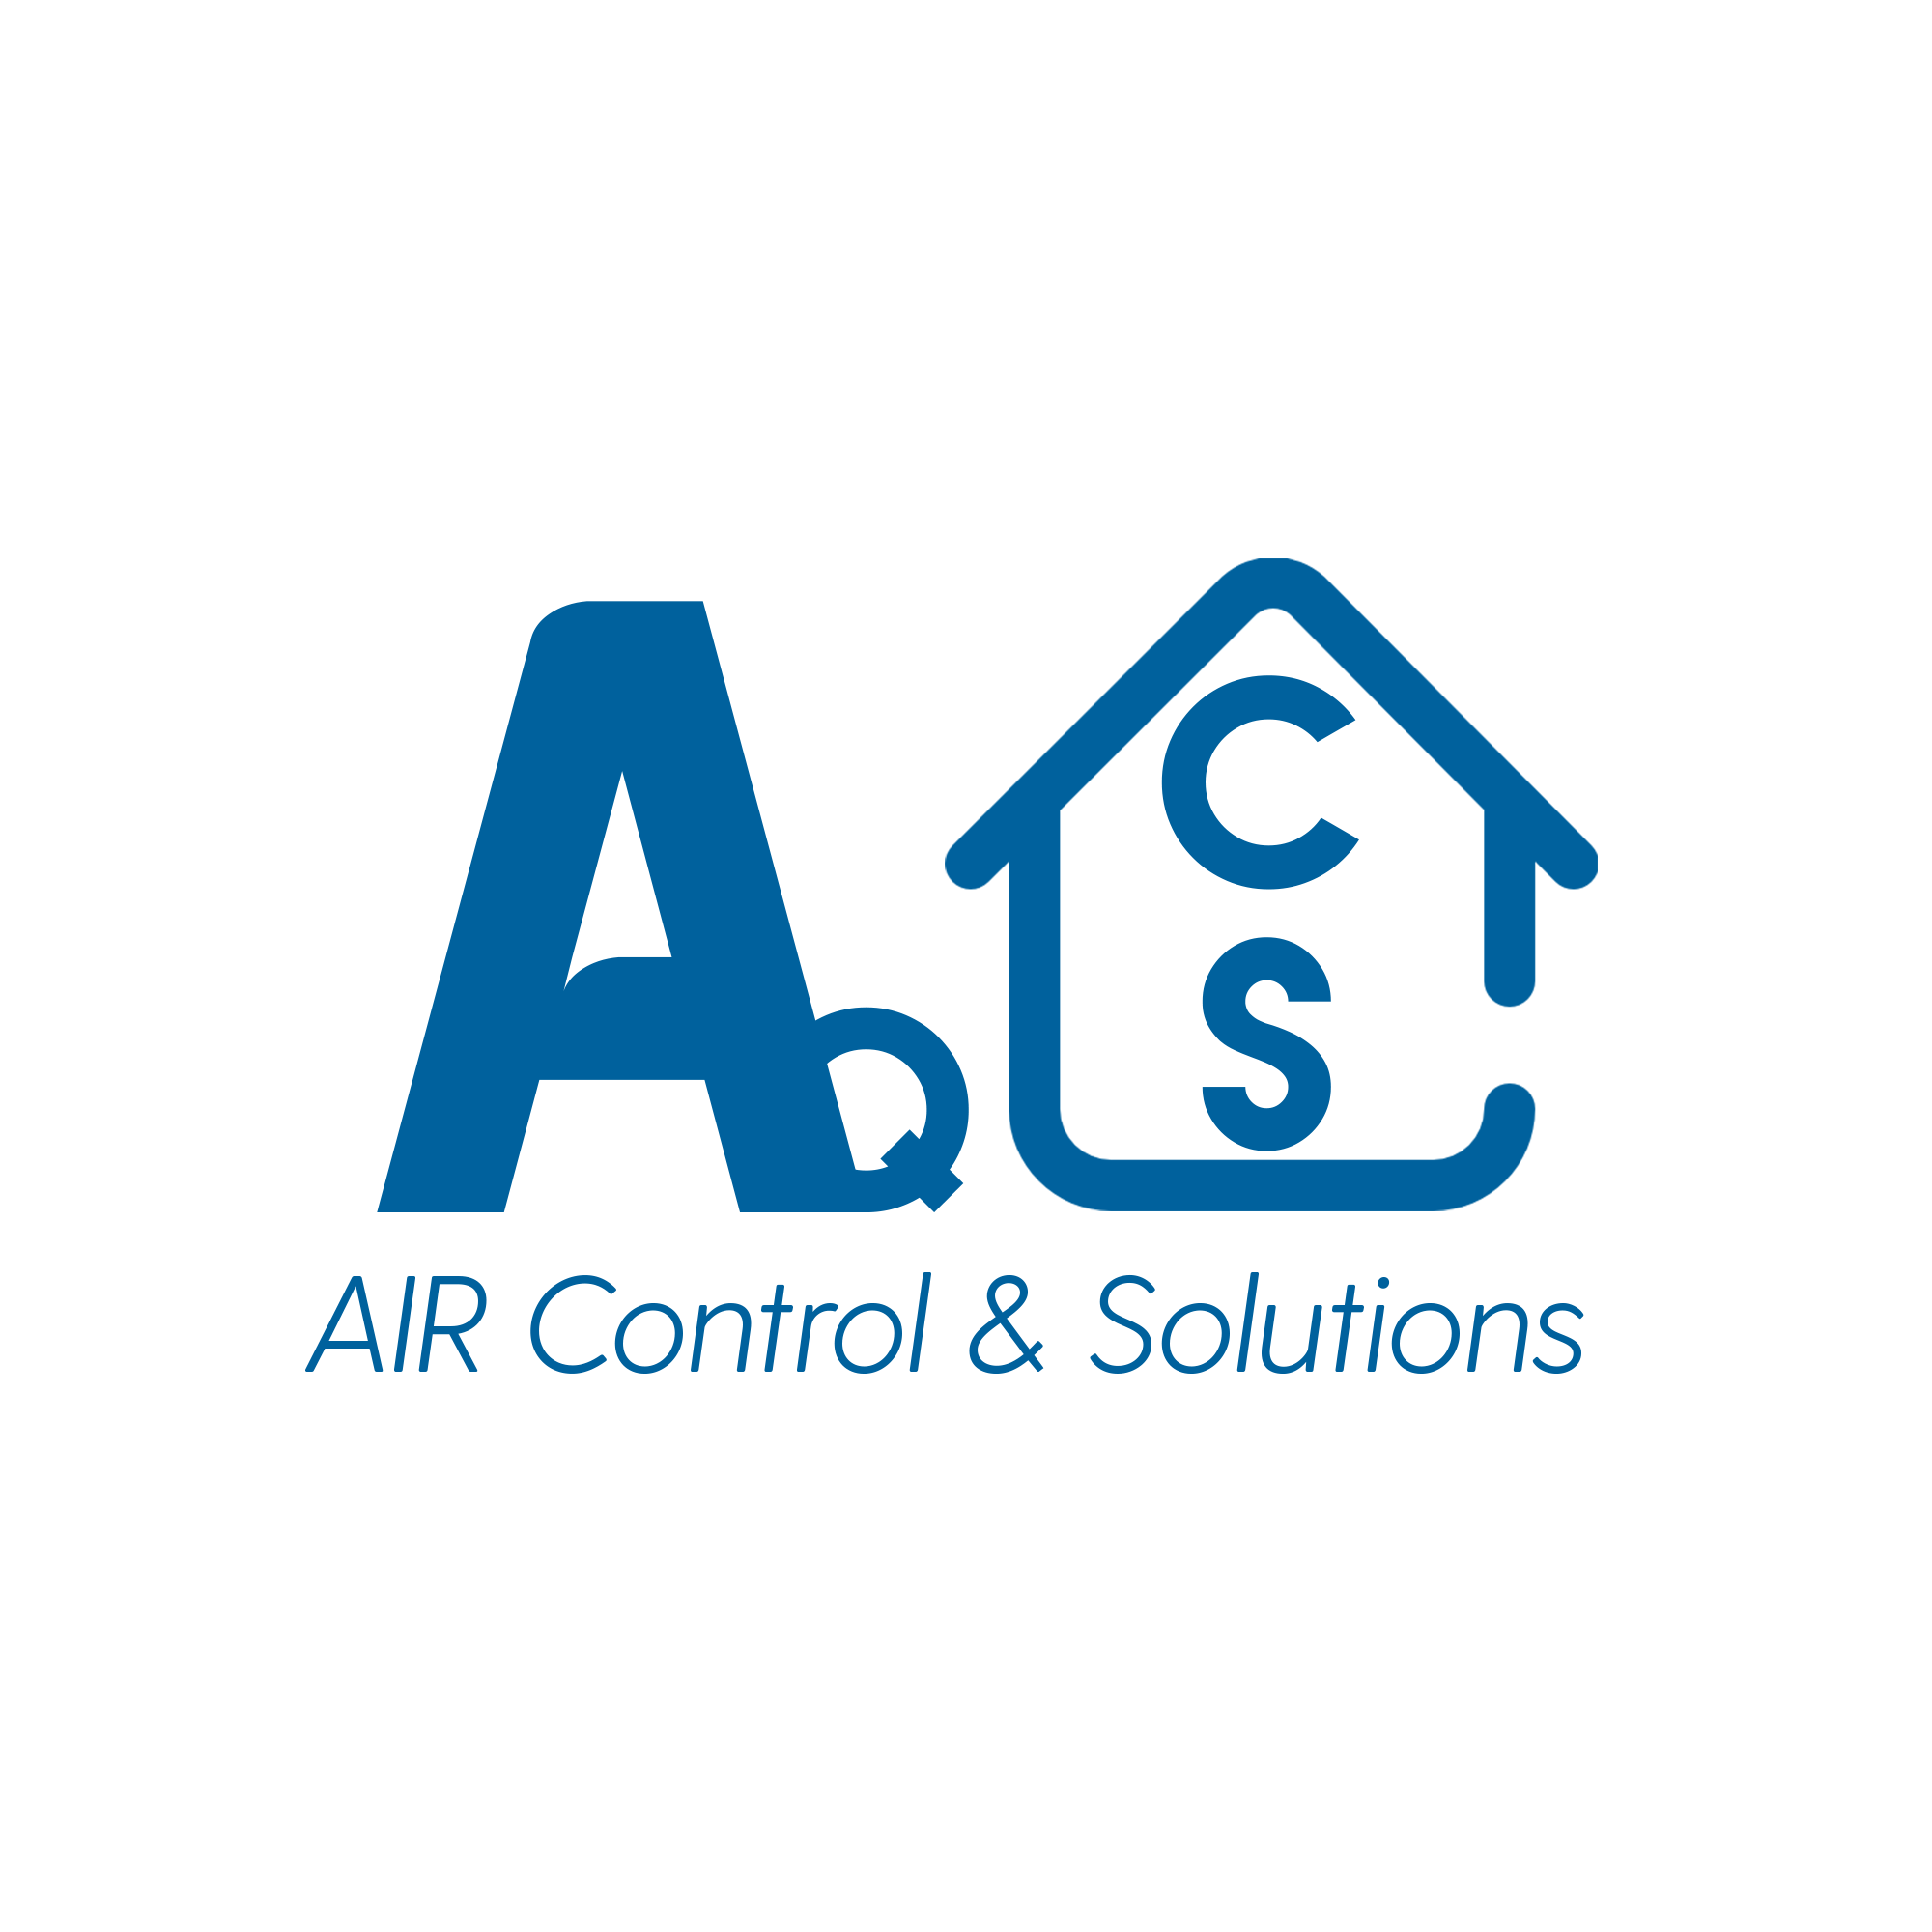 AIR CONTROL & SOLUTIONS